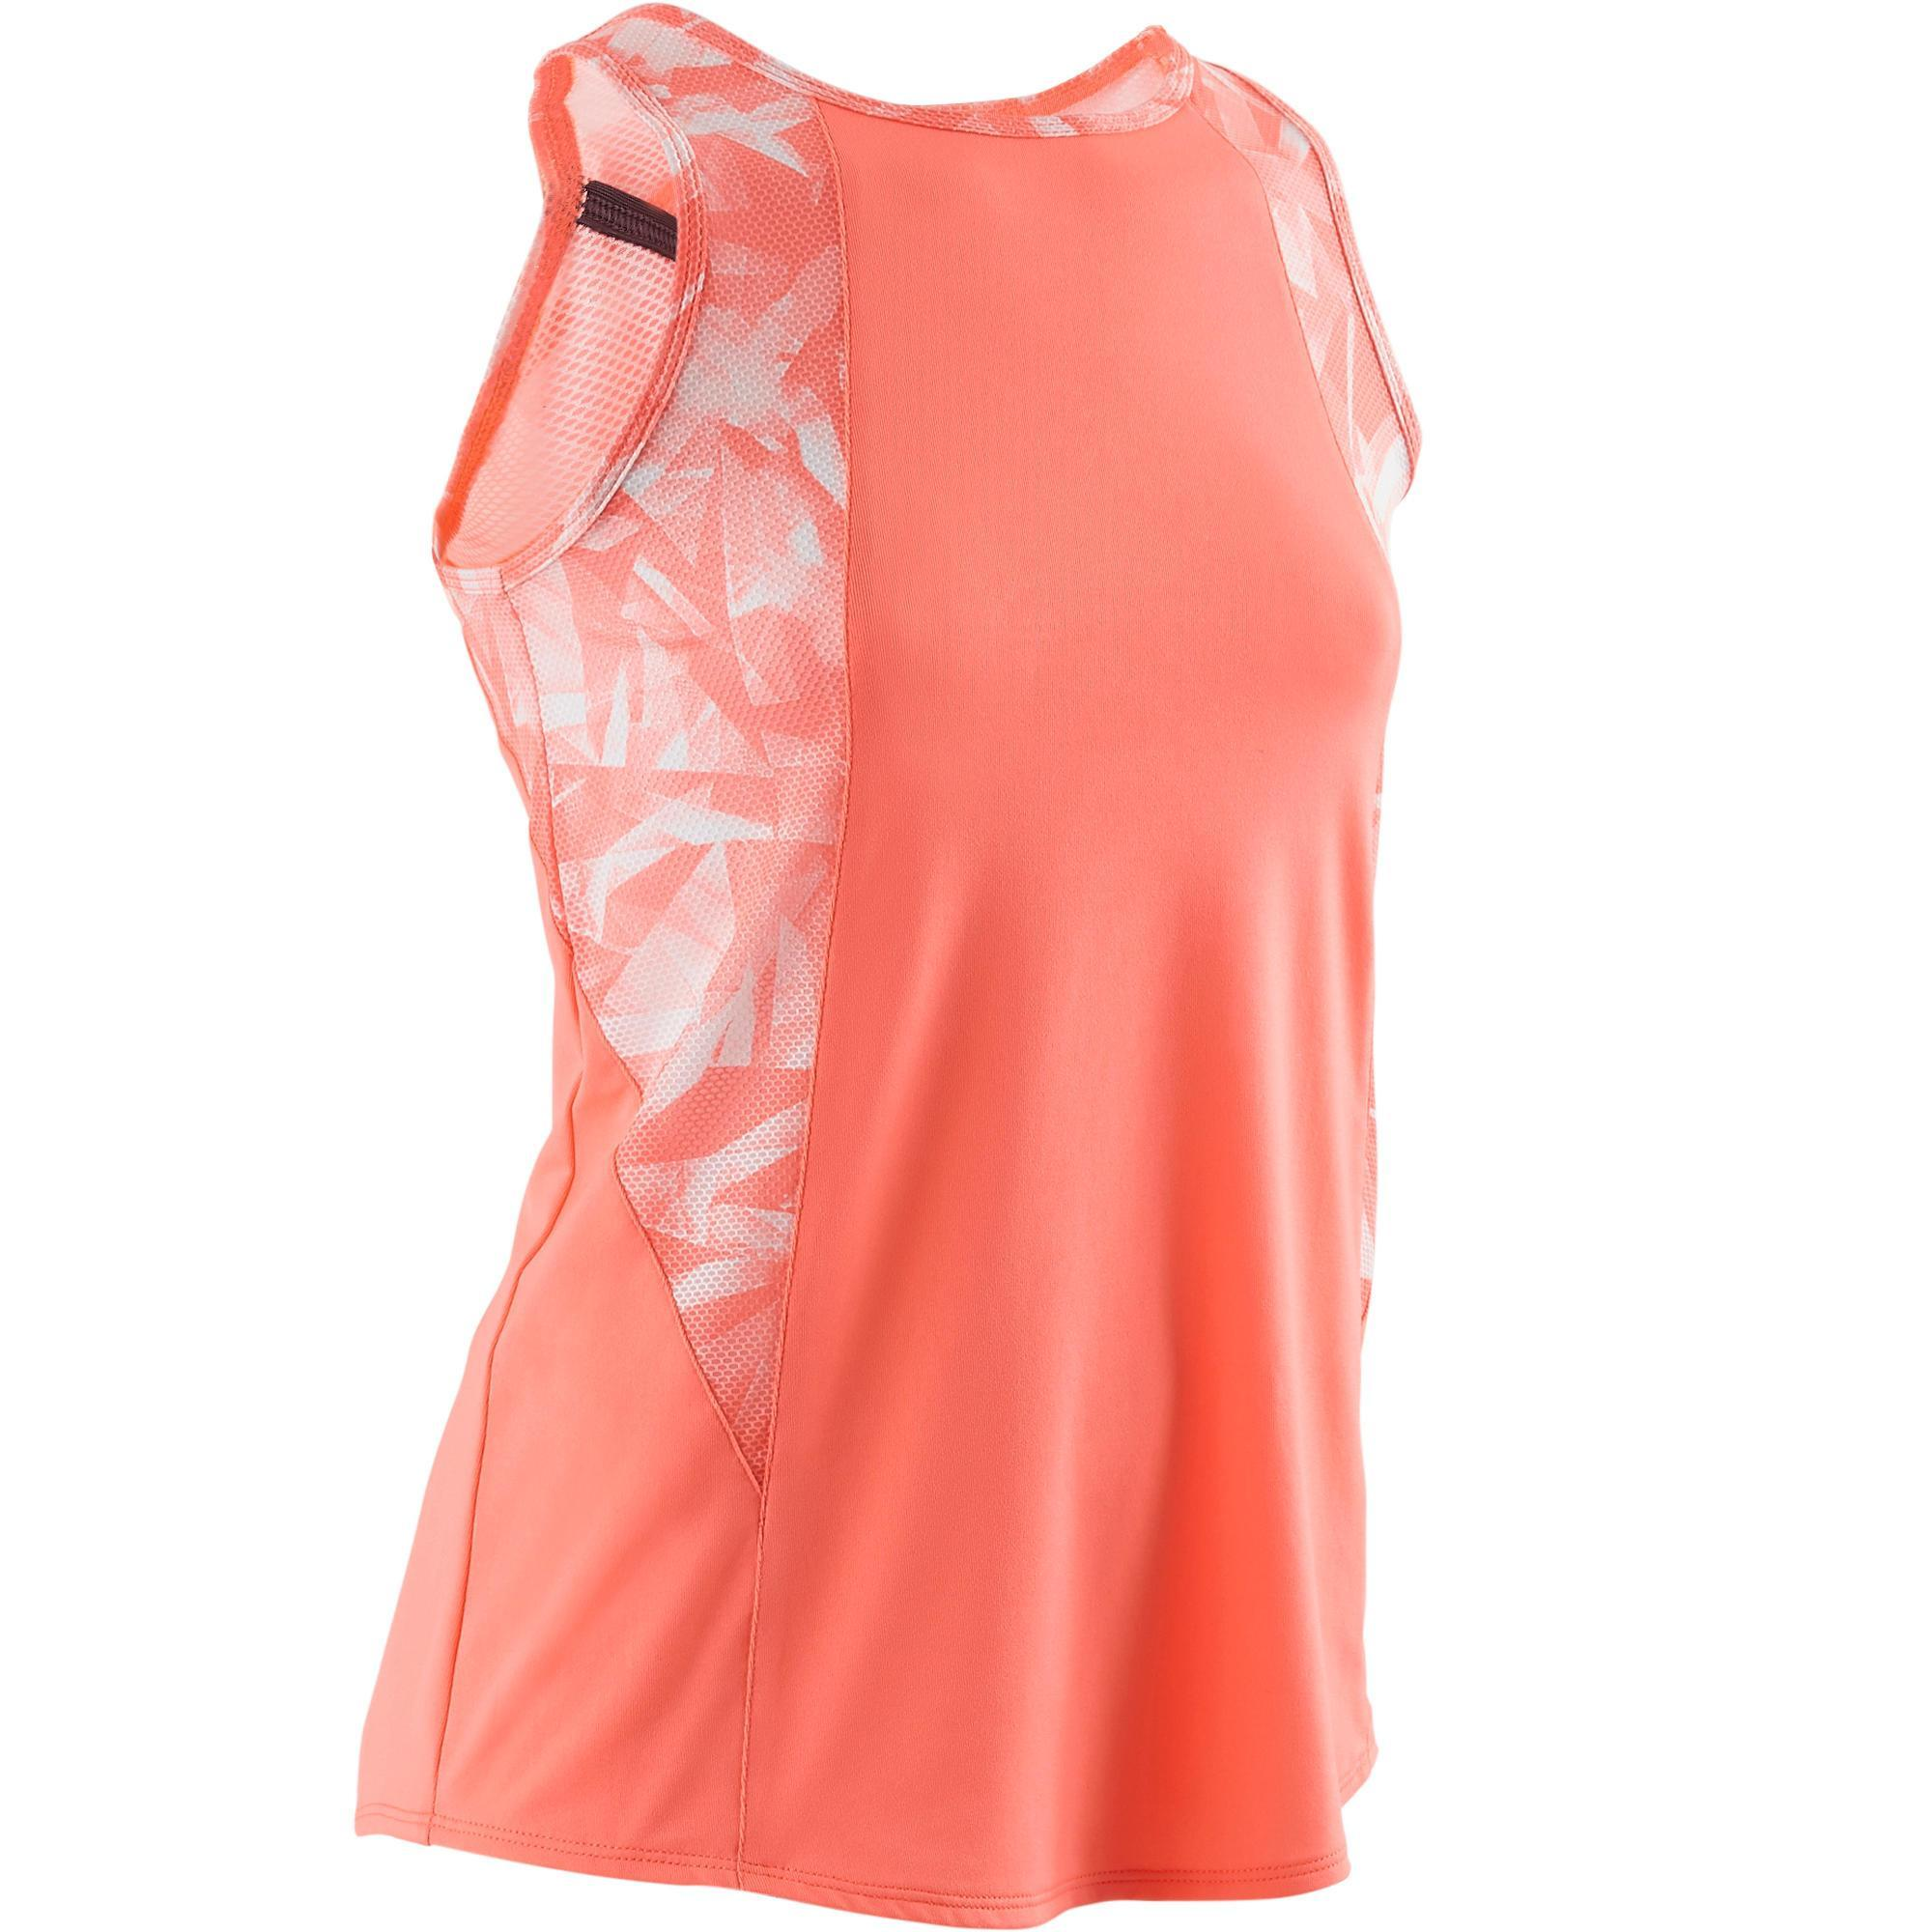 Tank-Top S900 Gym Kinder koralle mit Print